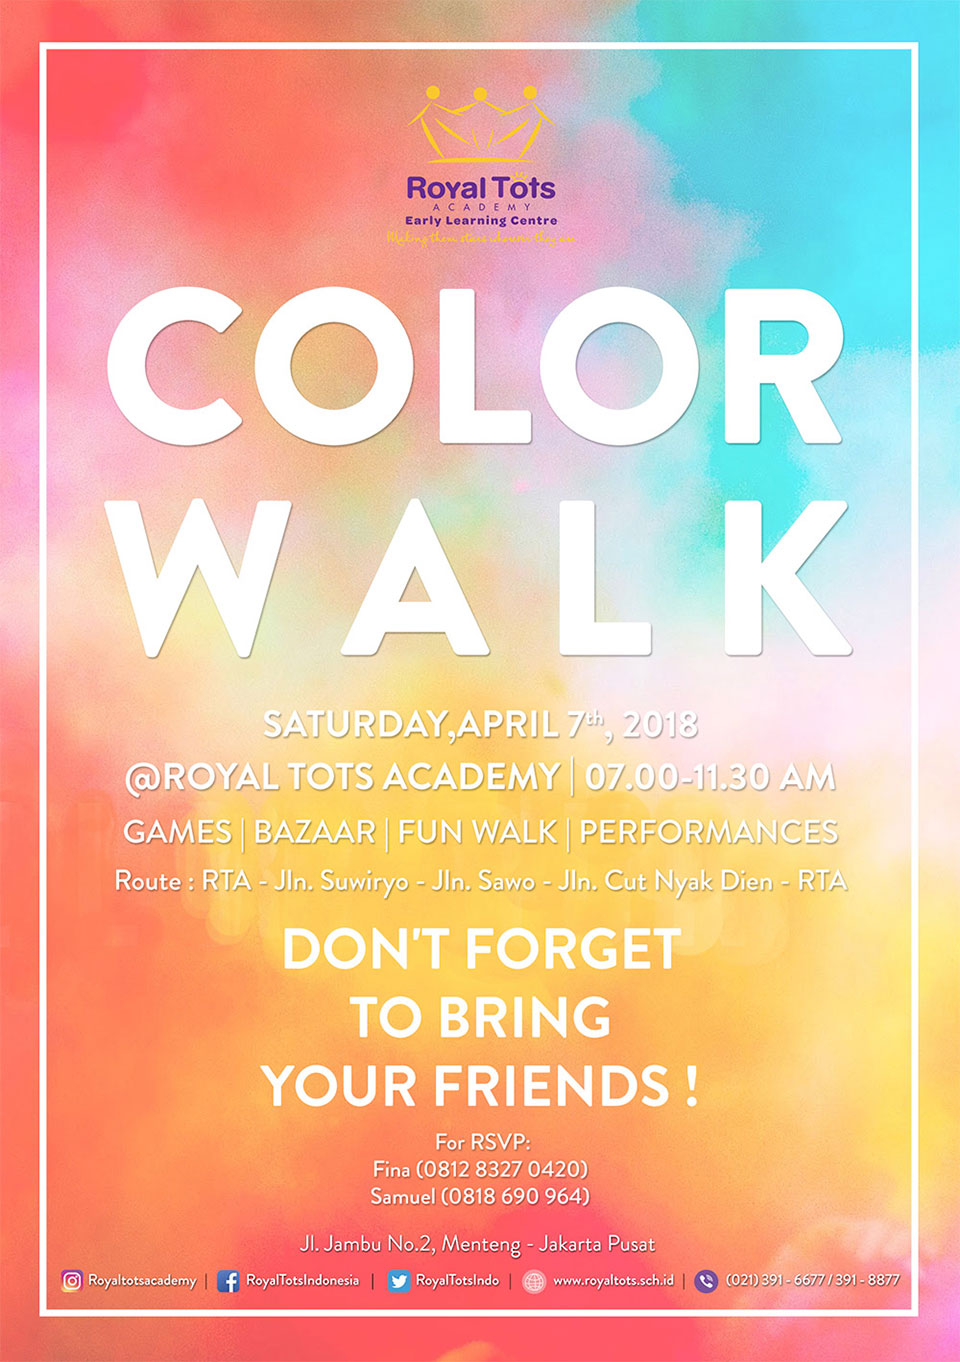 Royal Tots Academy - Color Walk